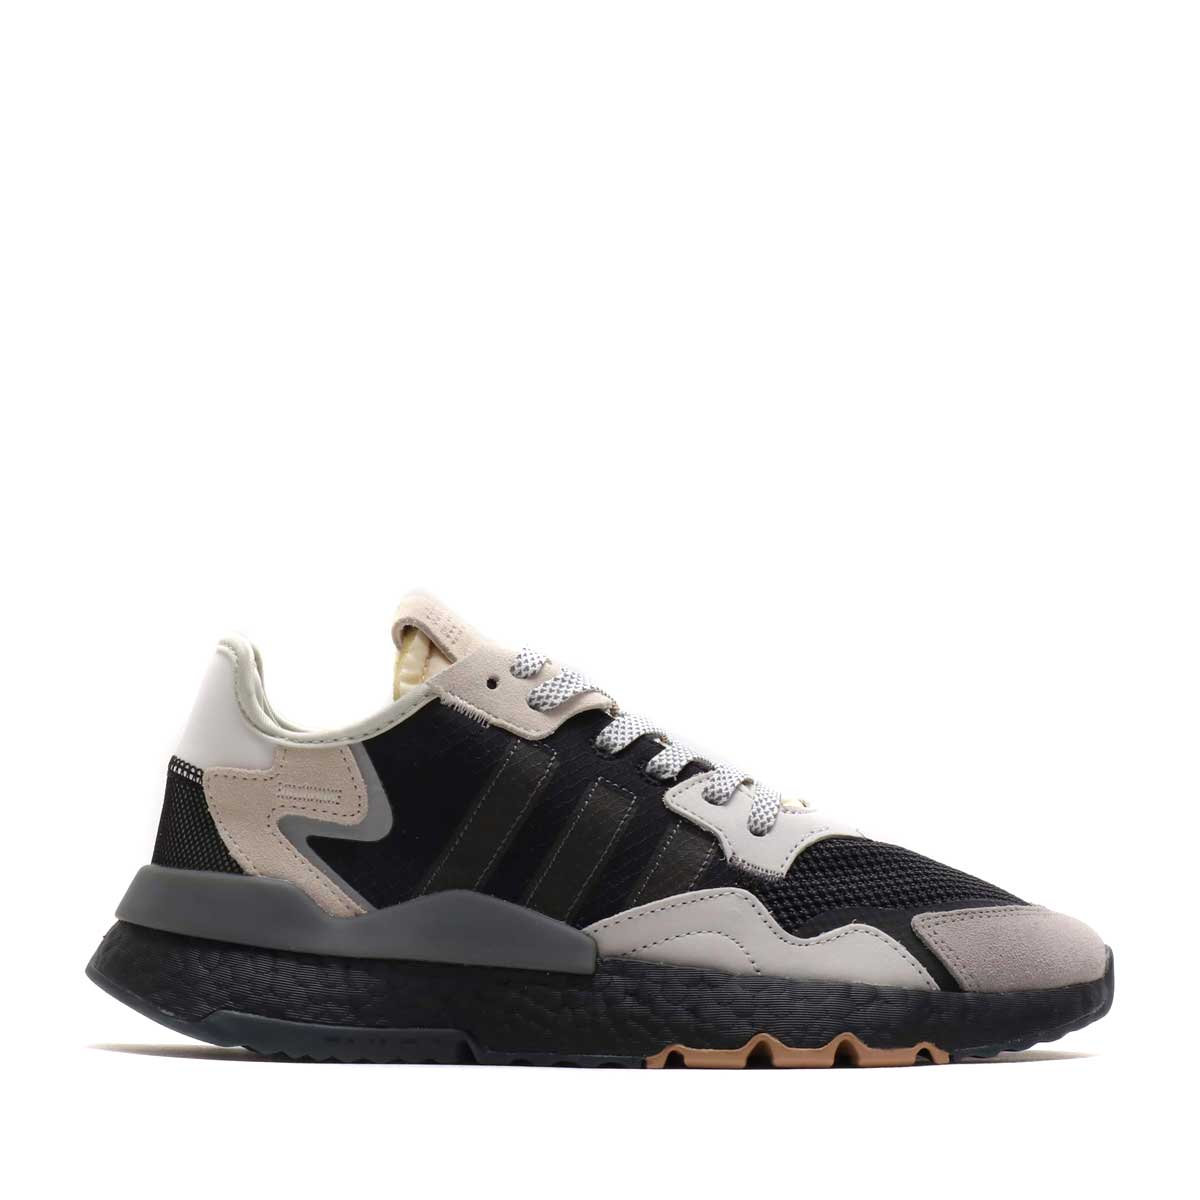 e668c6ab7172e adidas Originals NITE JOGGER (CORE BLACK CARBON RUNNING WHITE) (Adidas  knight jogger)